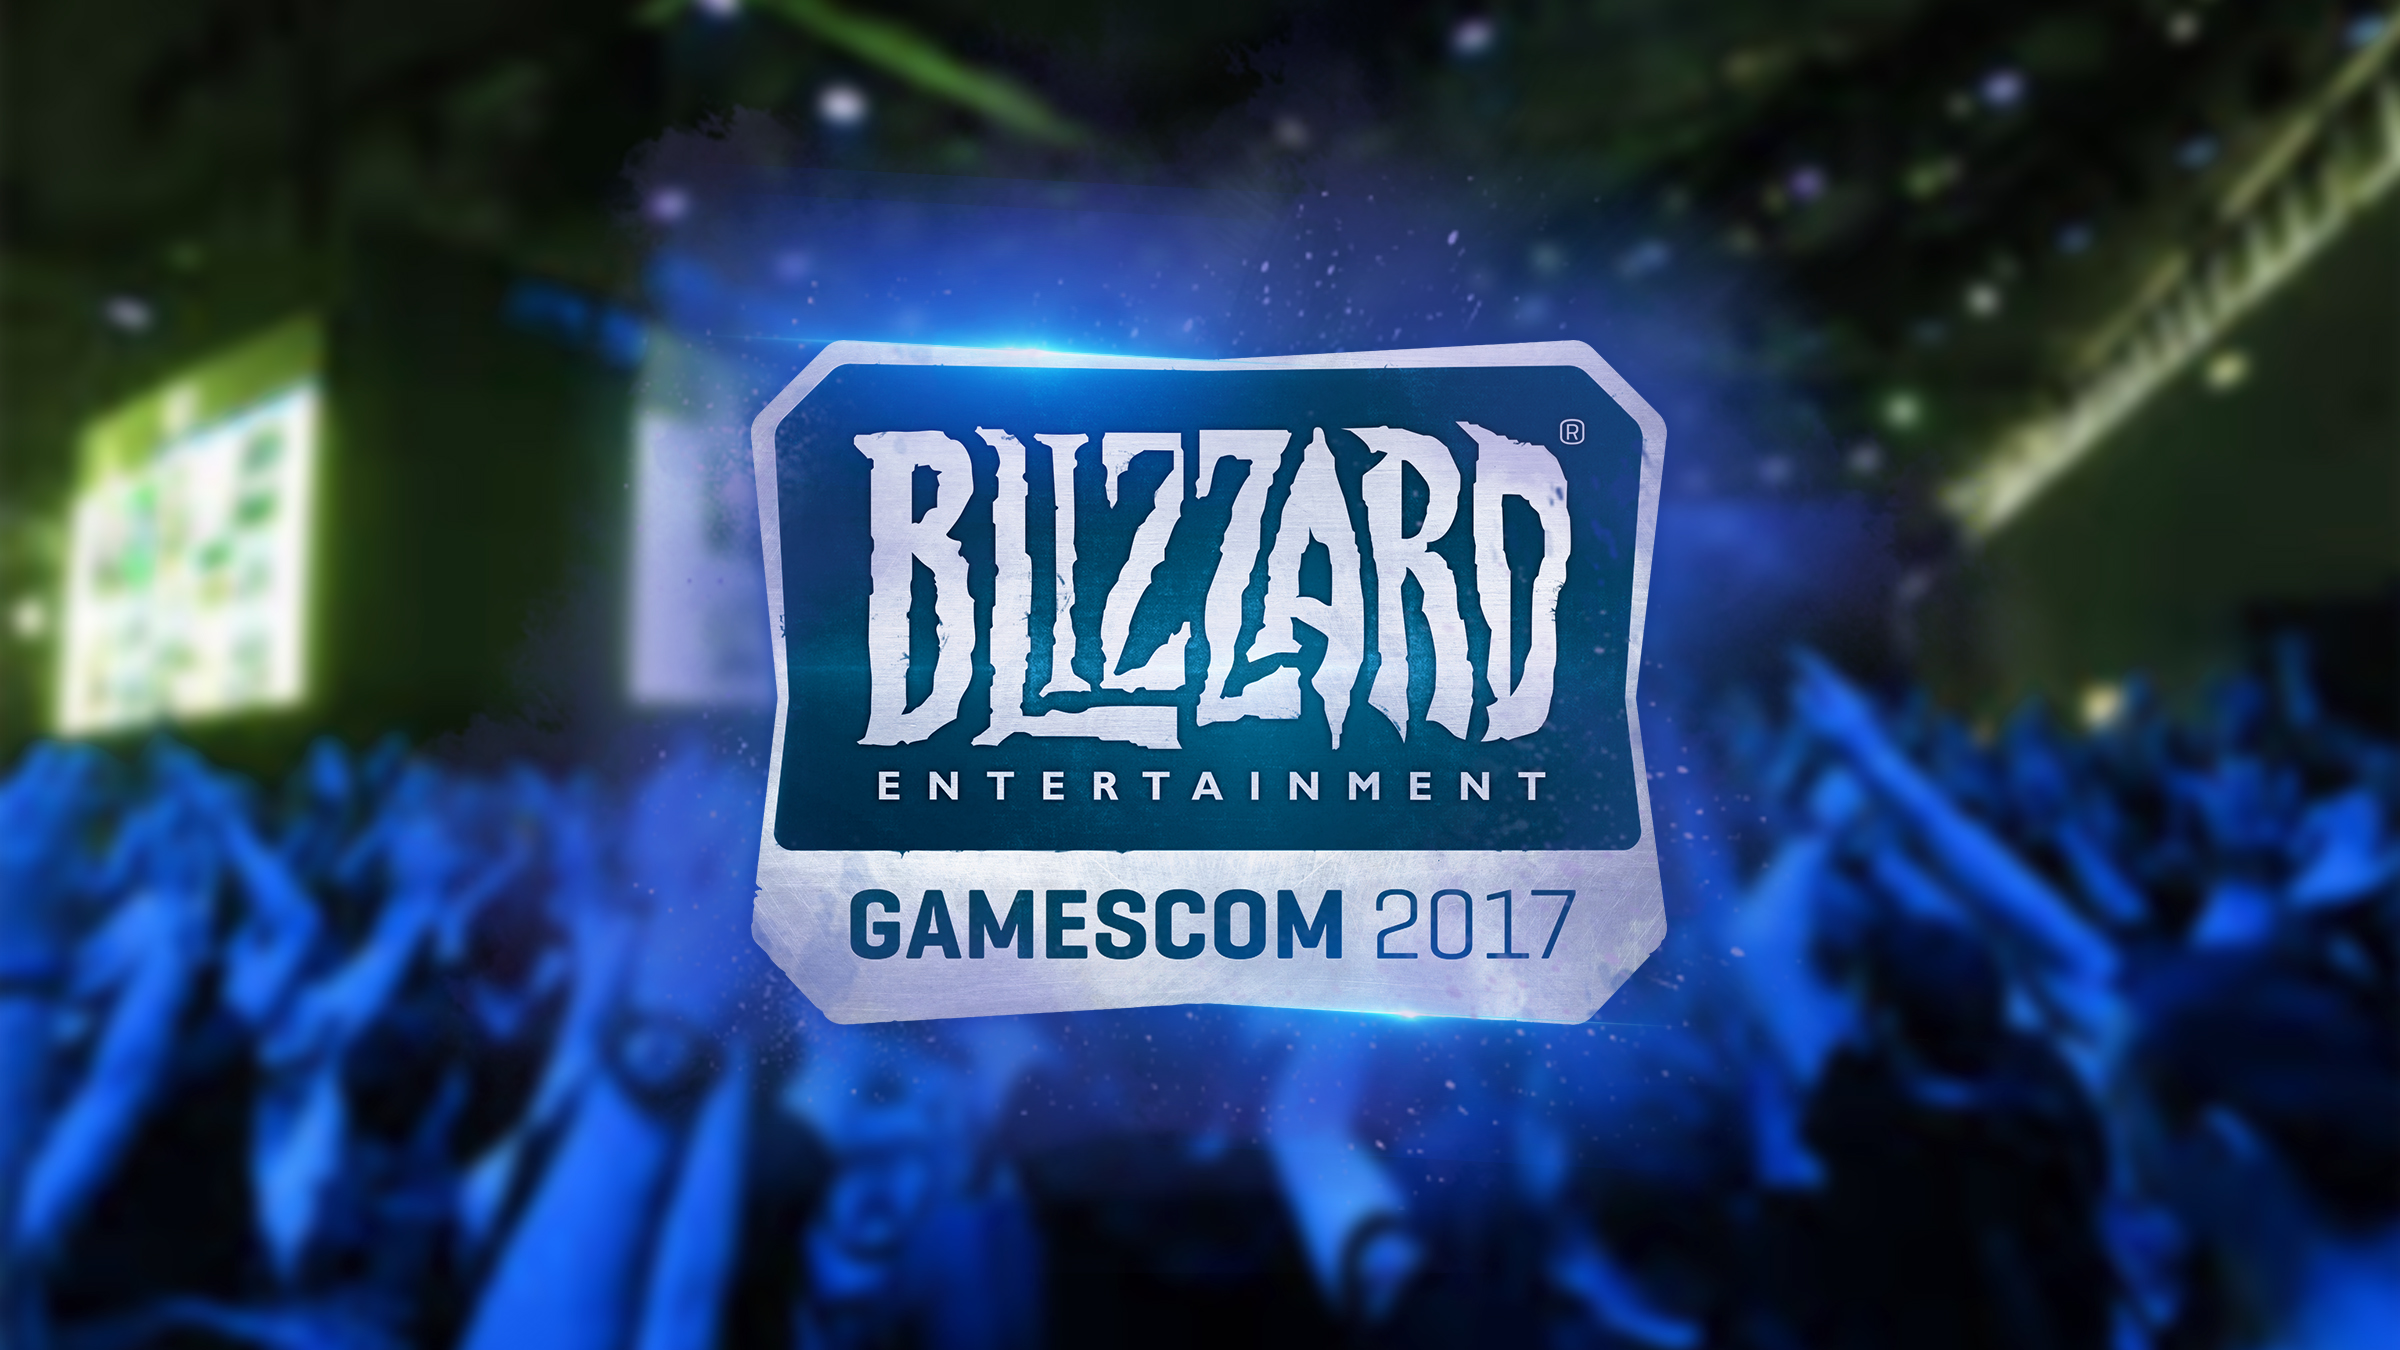 Blizzard Entertainment alla gamescom 2017